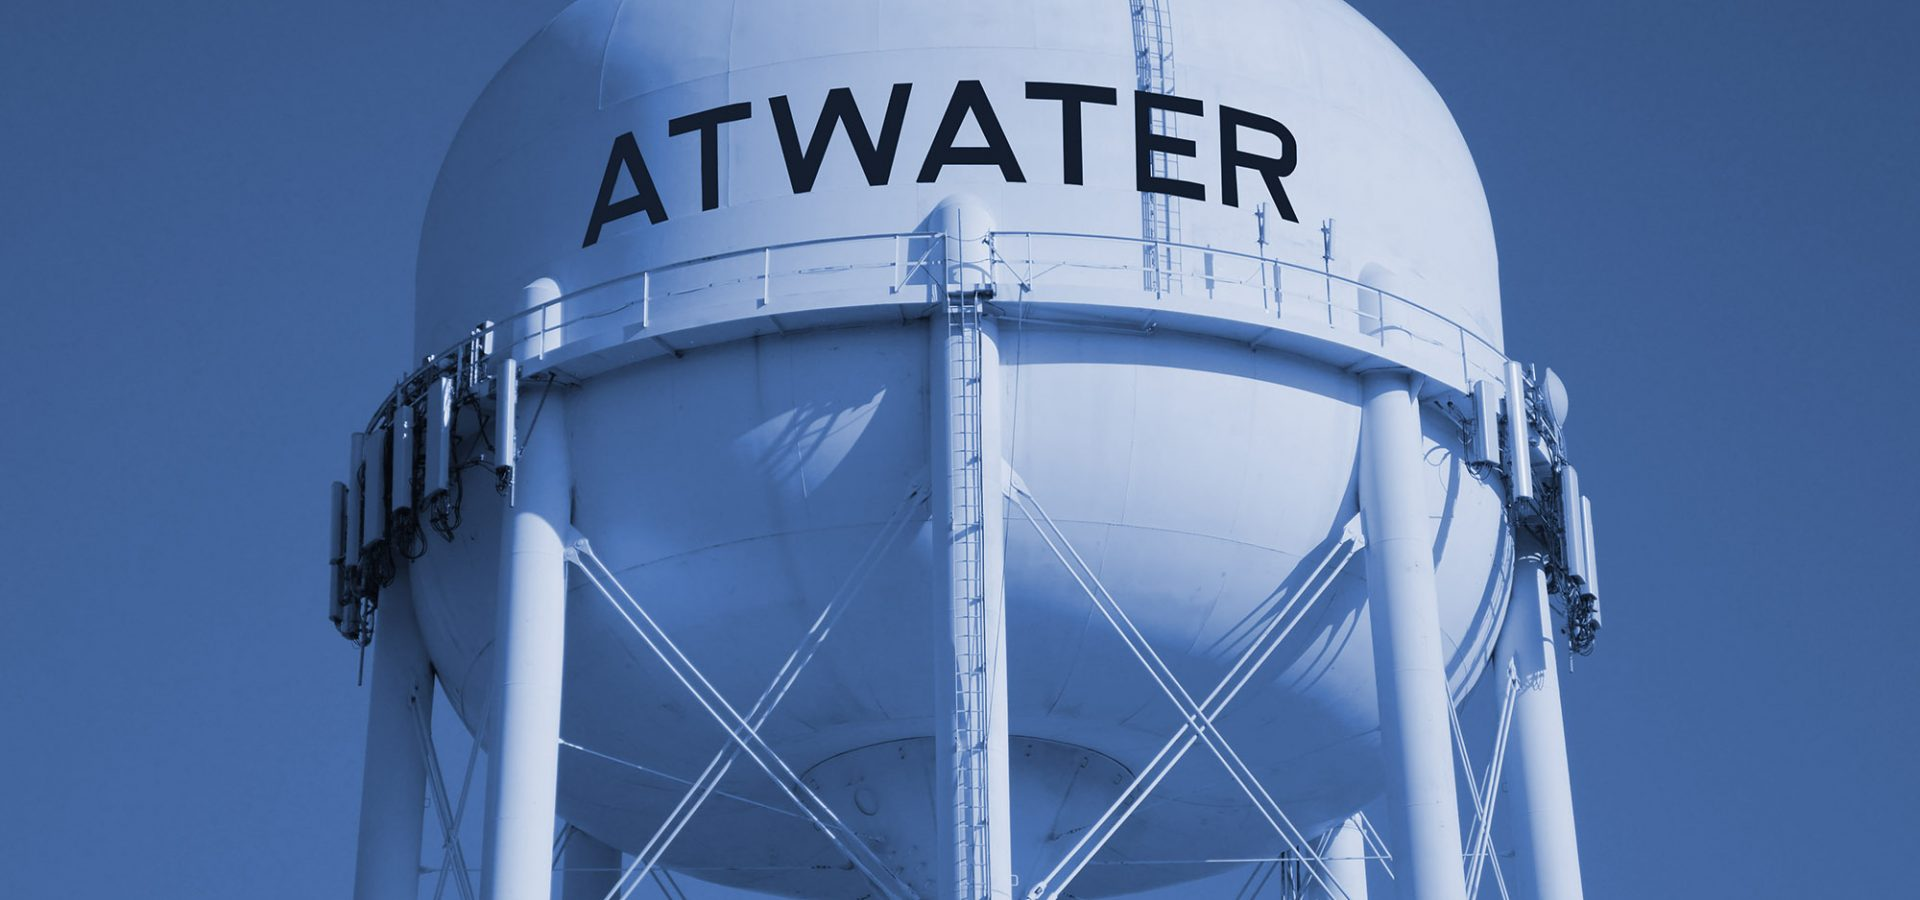 City of Atwater Water Tower